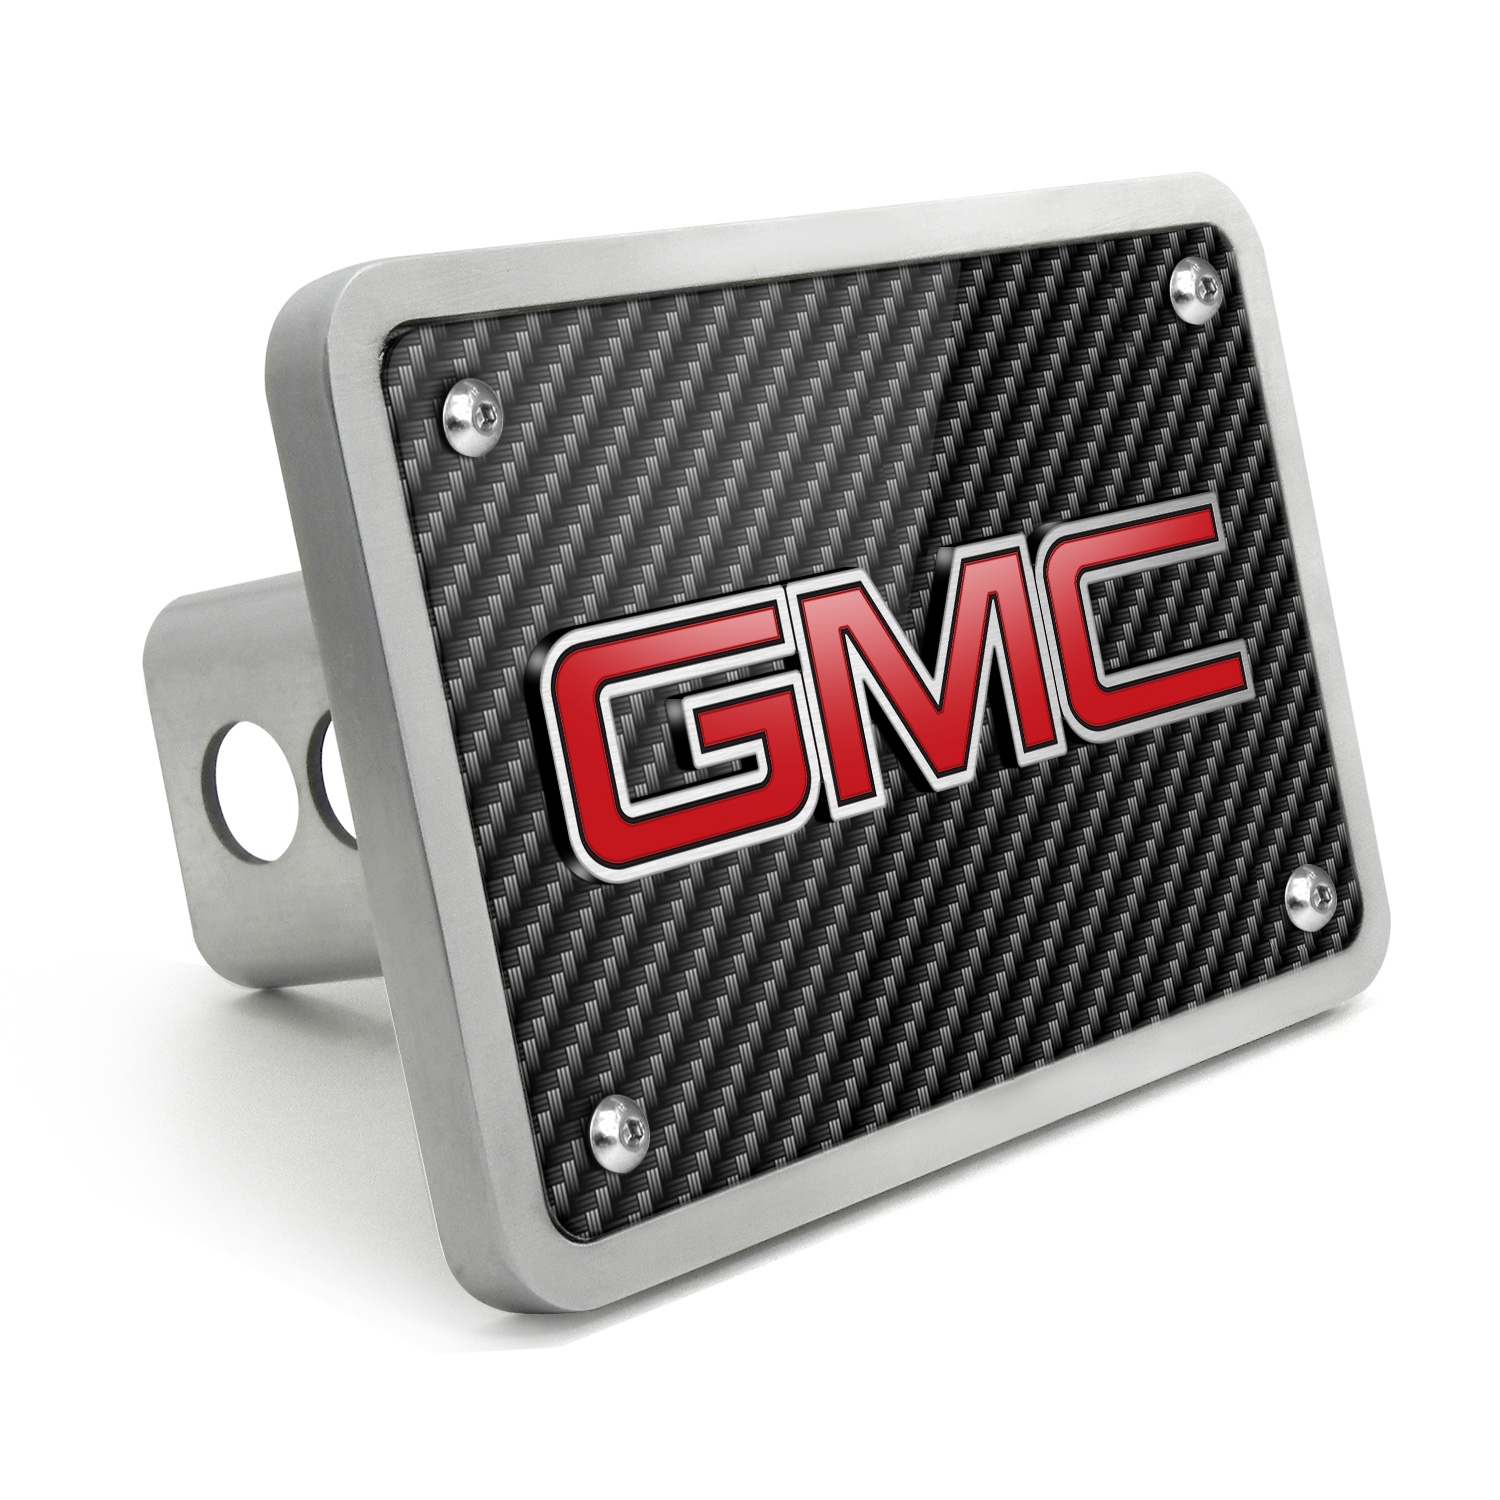 GMC 3D Logo in Red Inlay Carbon Fiber Texture Billet Aluminum 2 inch Tow Hitch Cover